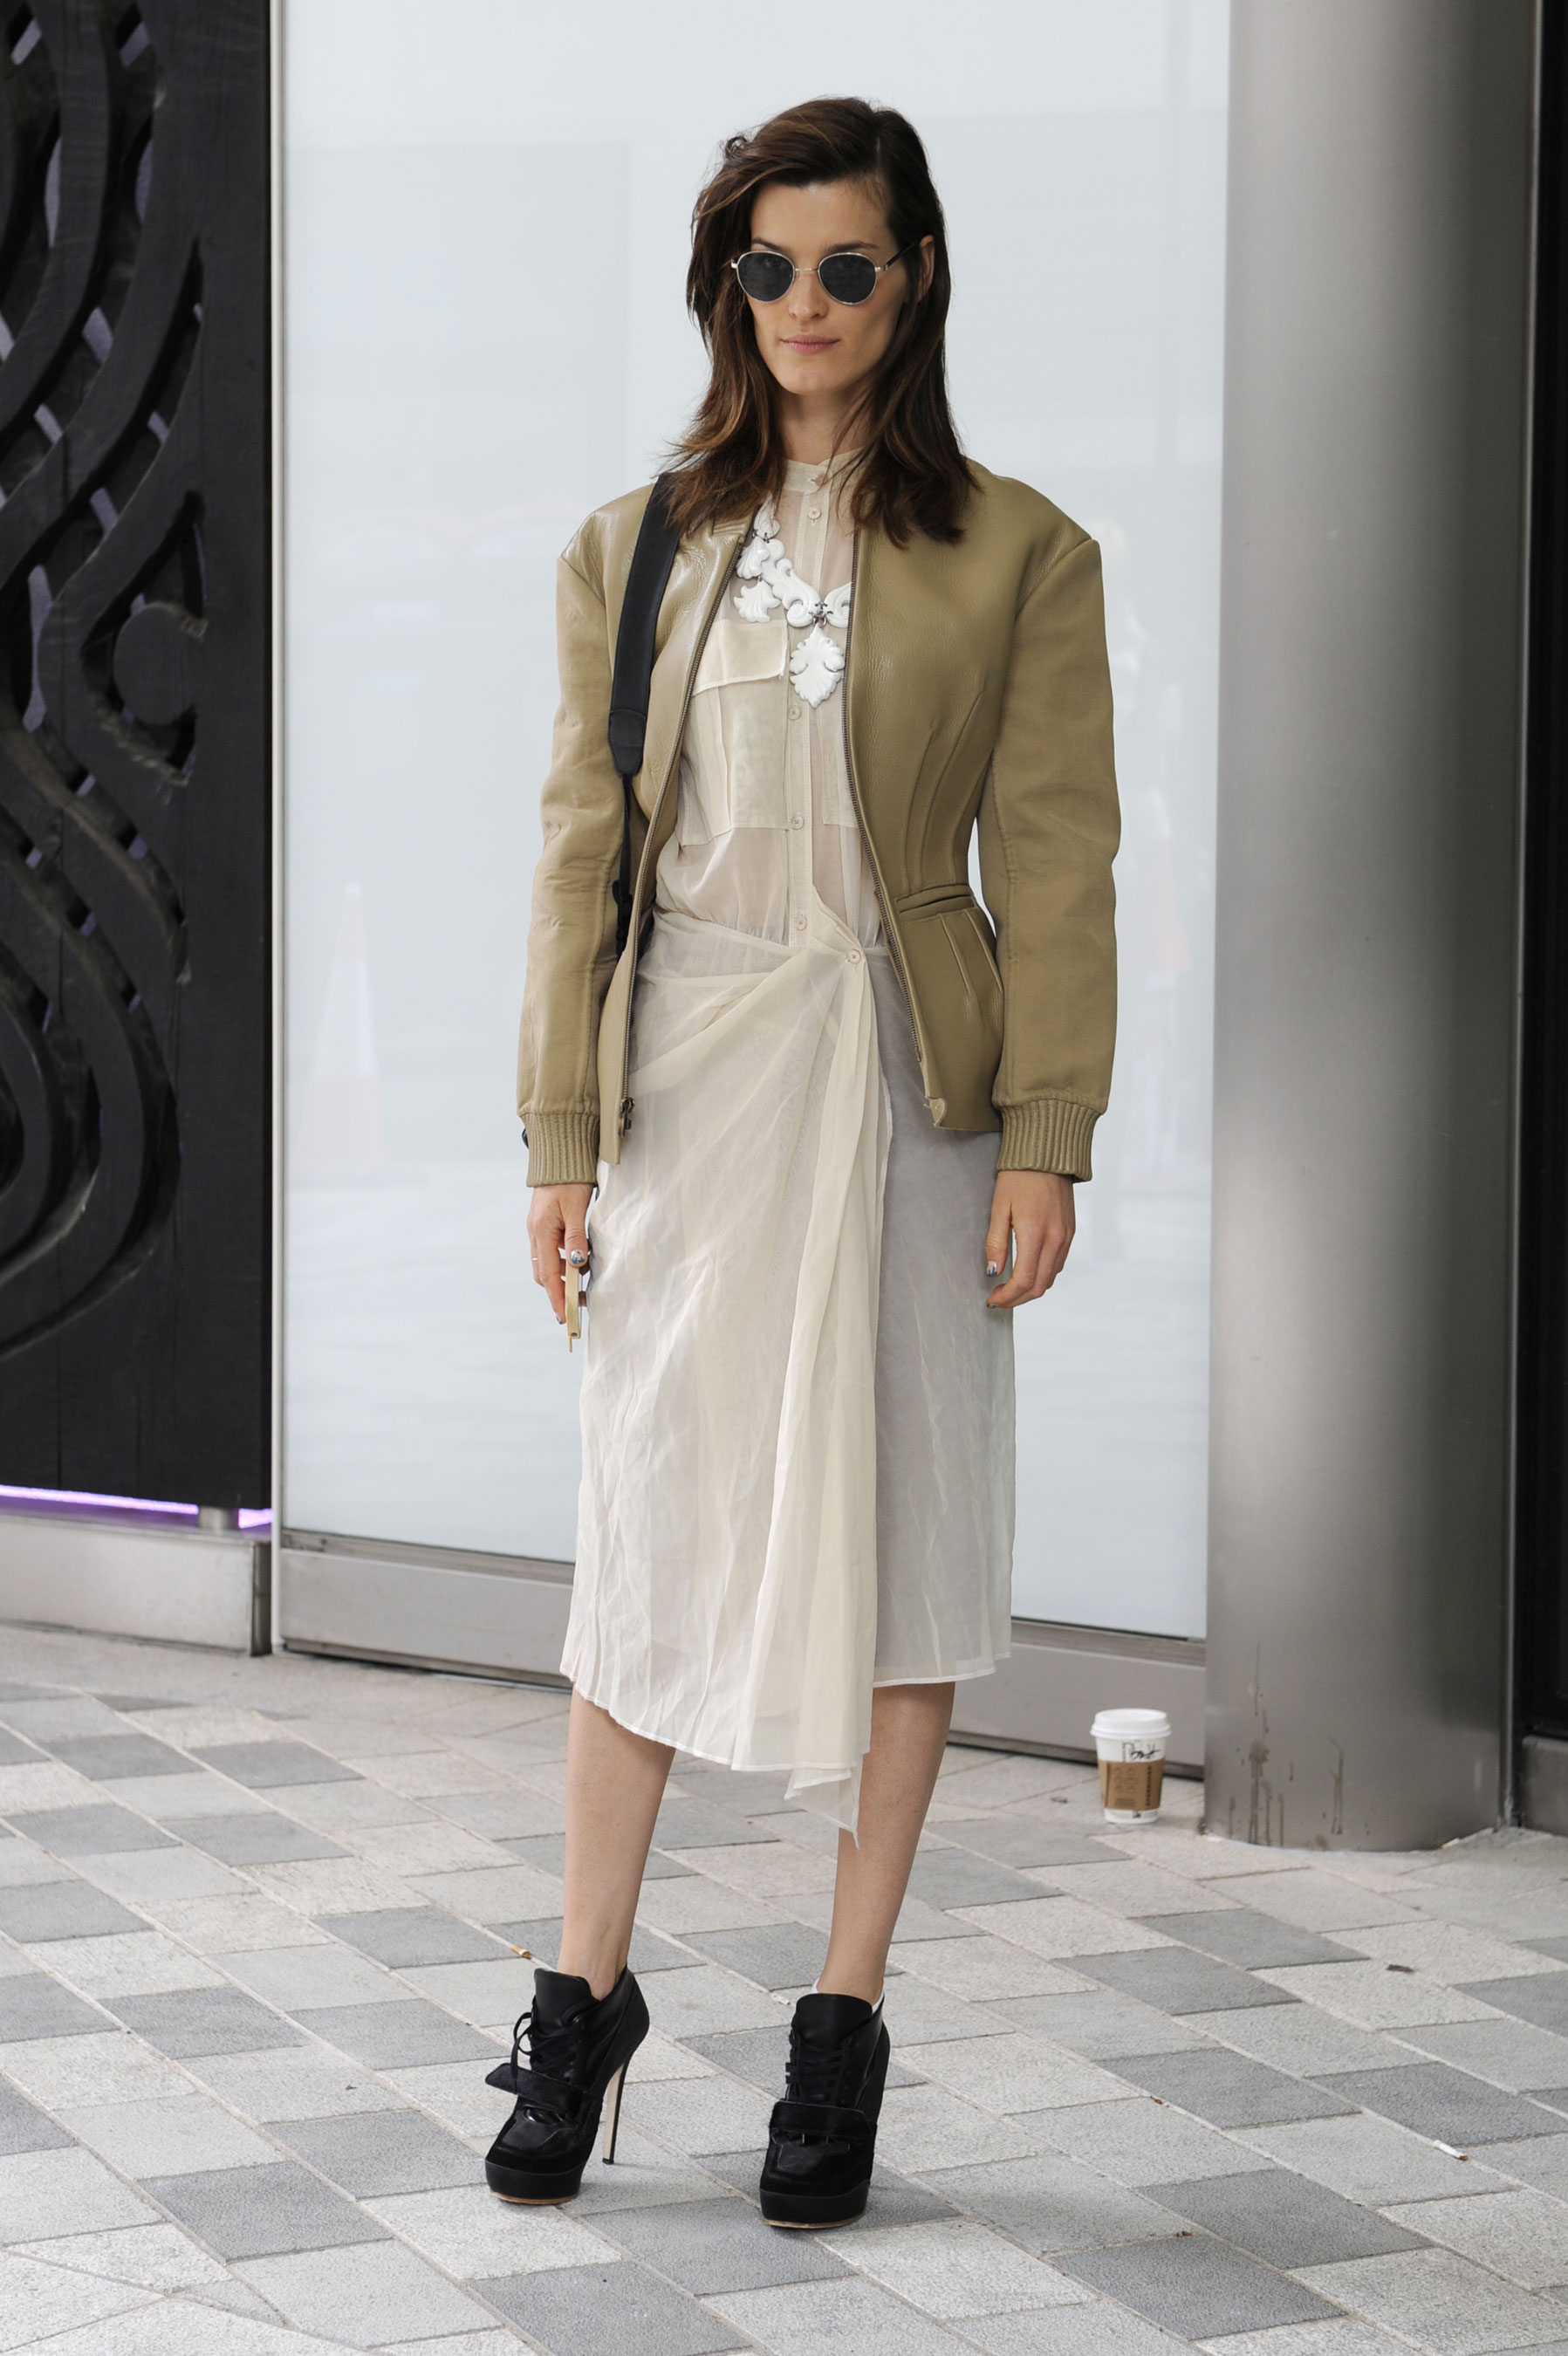 Hanneli Mustaparta toughened up a breezy, white chiffon dress with a military-style jacket and black, athletic-style booties.